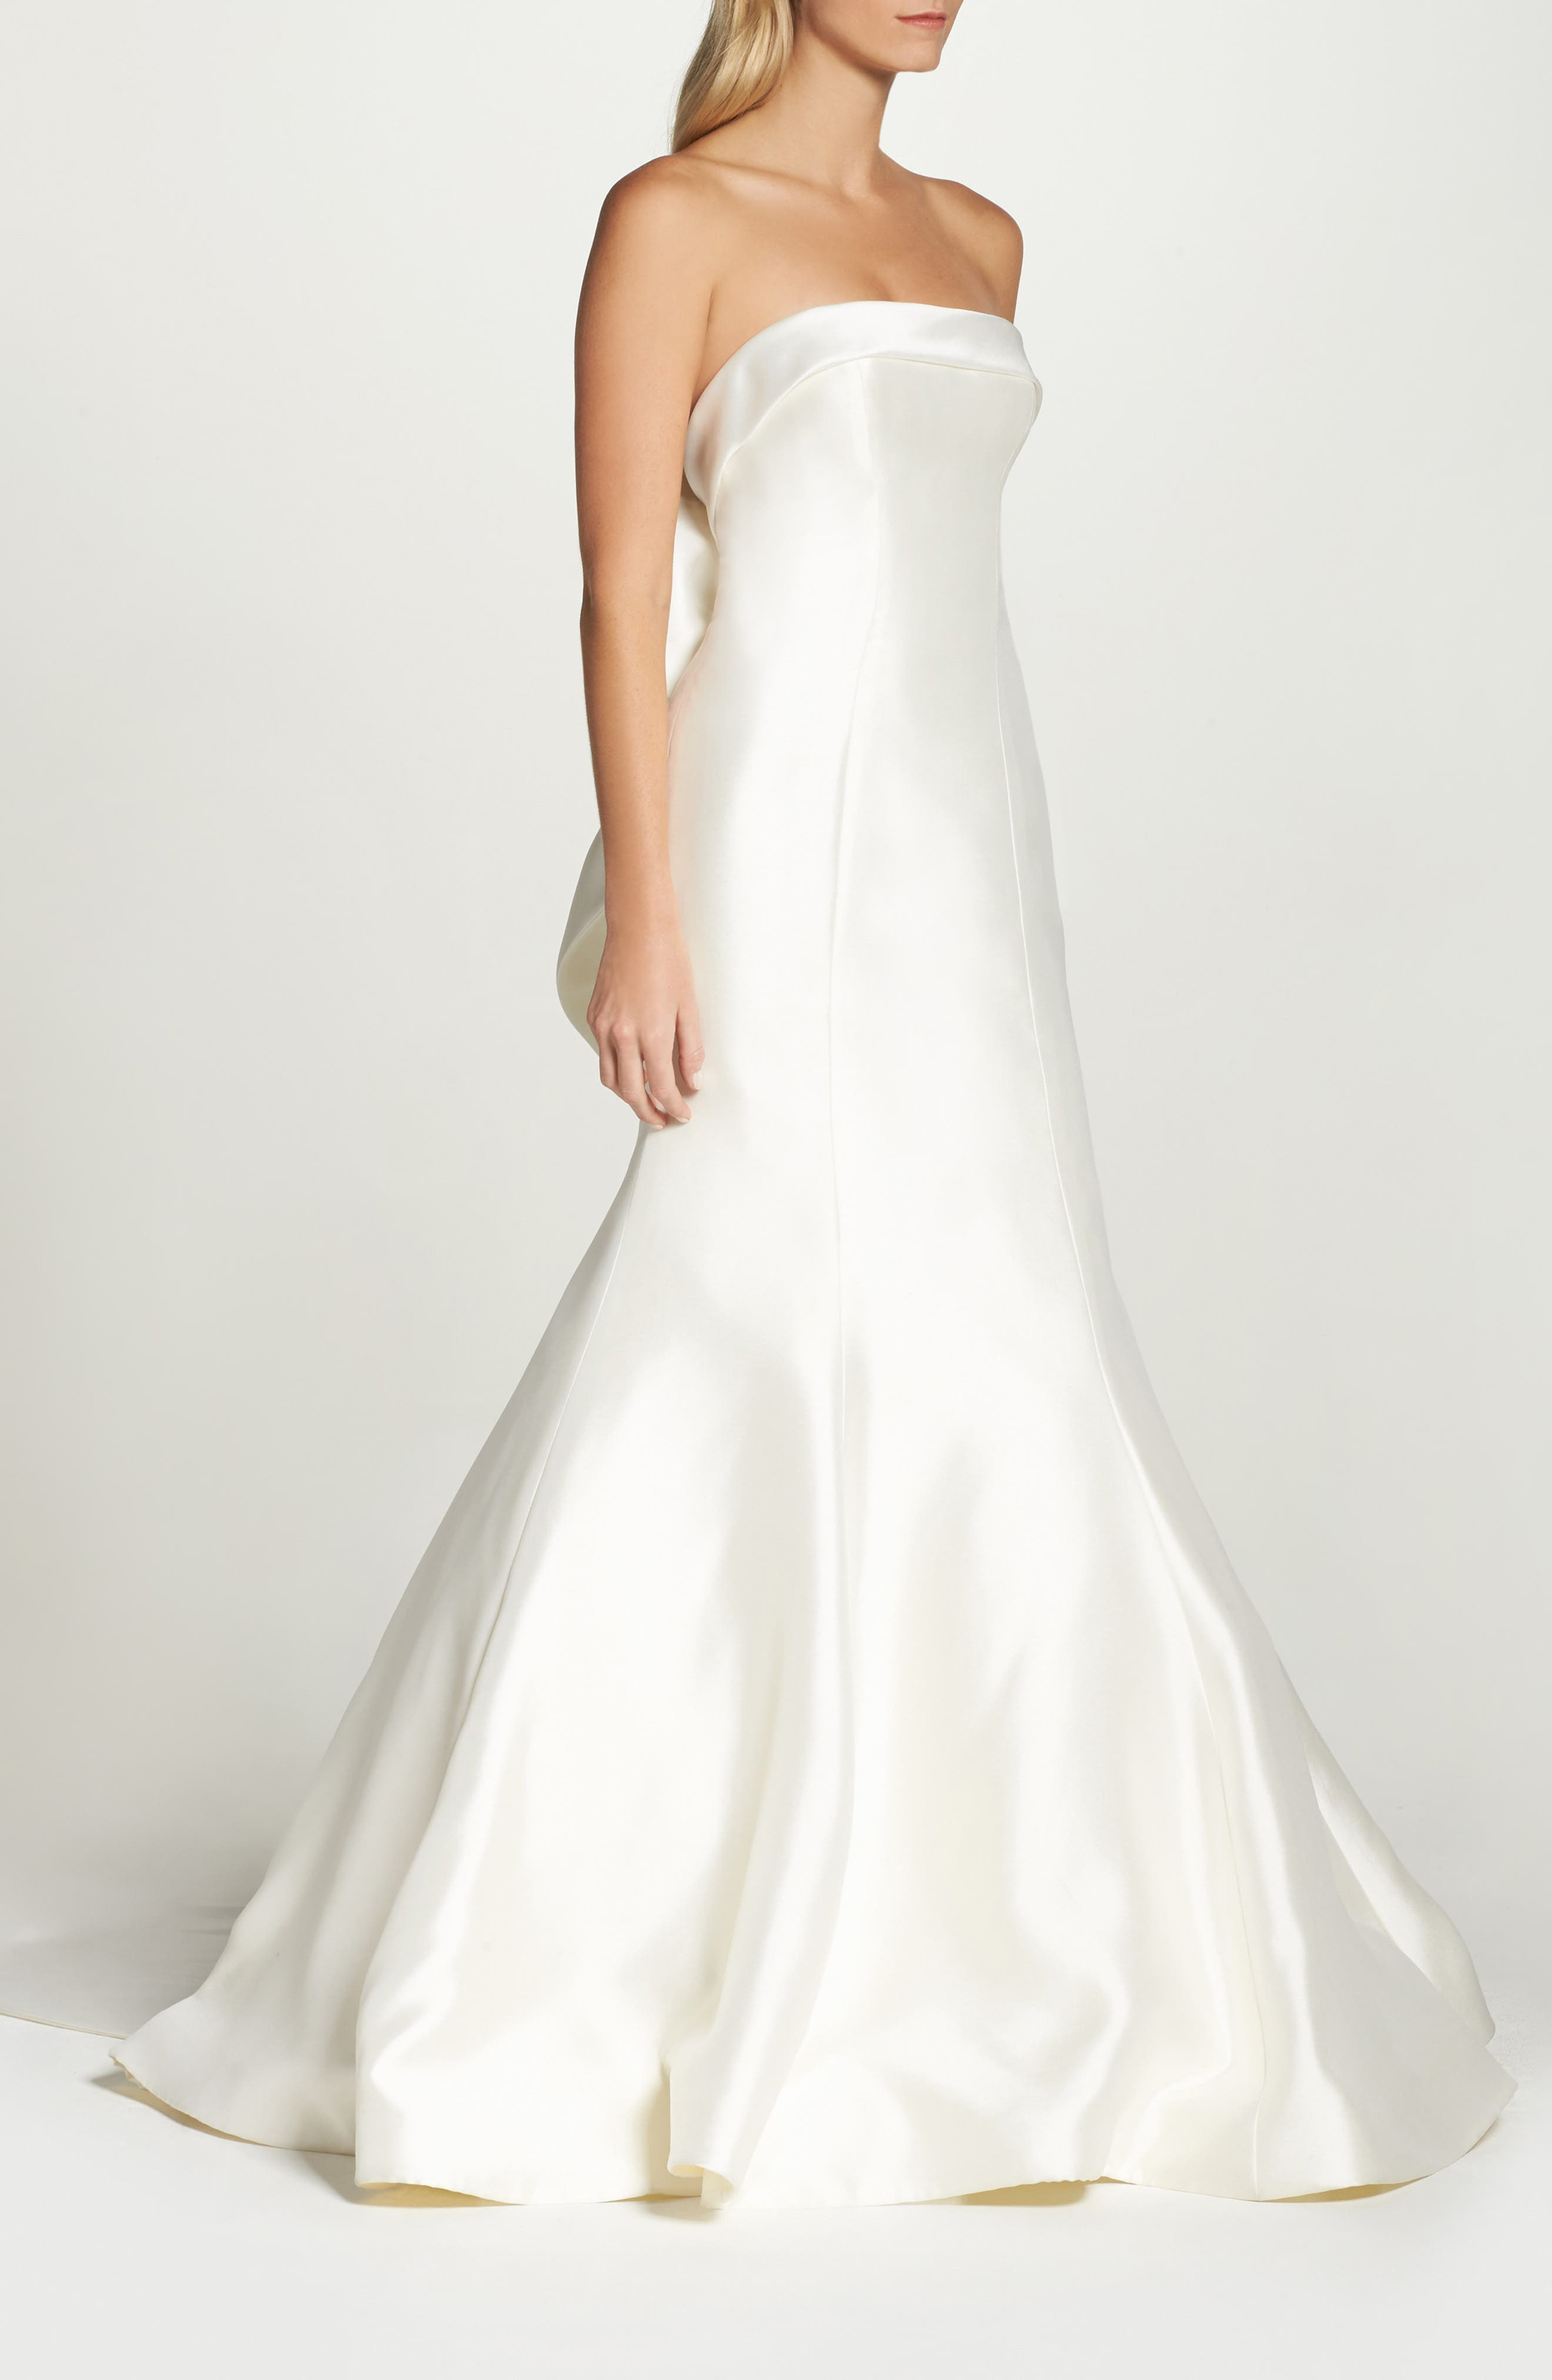 Peony Strapless Mikado Trumpet Gown with Bow Train,                             Alternate thumbnail 3, color,                             IVORY